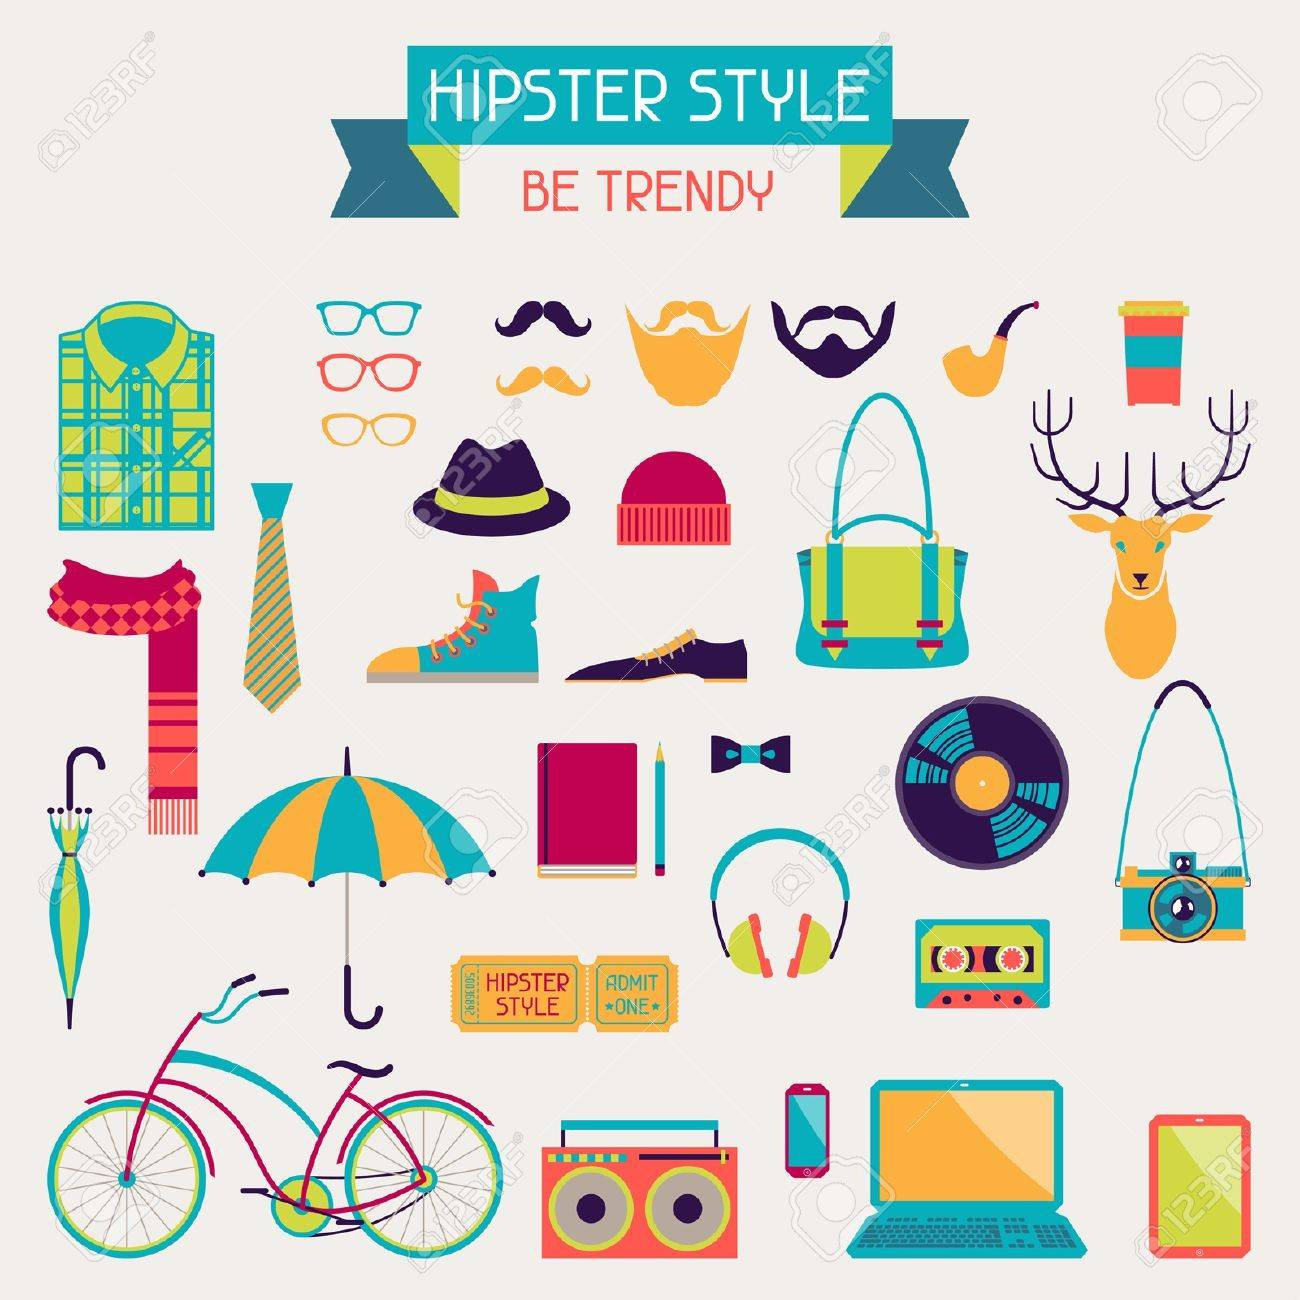 Hipster style elements and icons set for retro design Stock Vector - 20913509